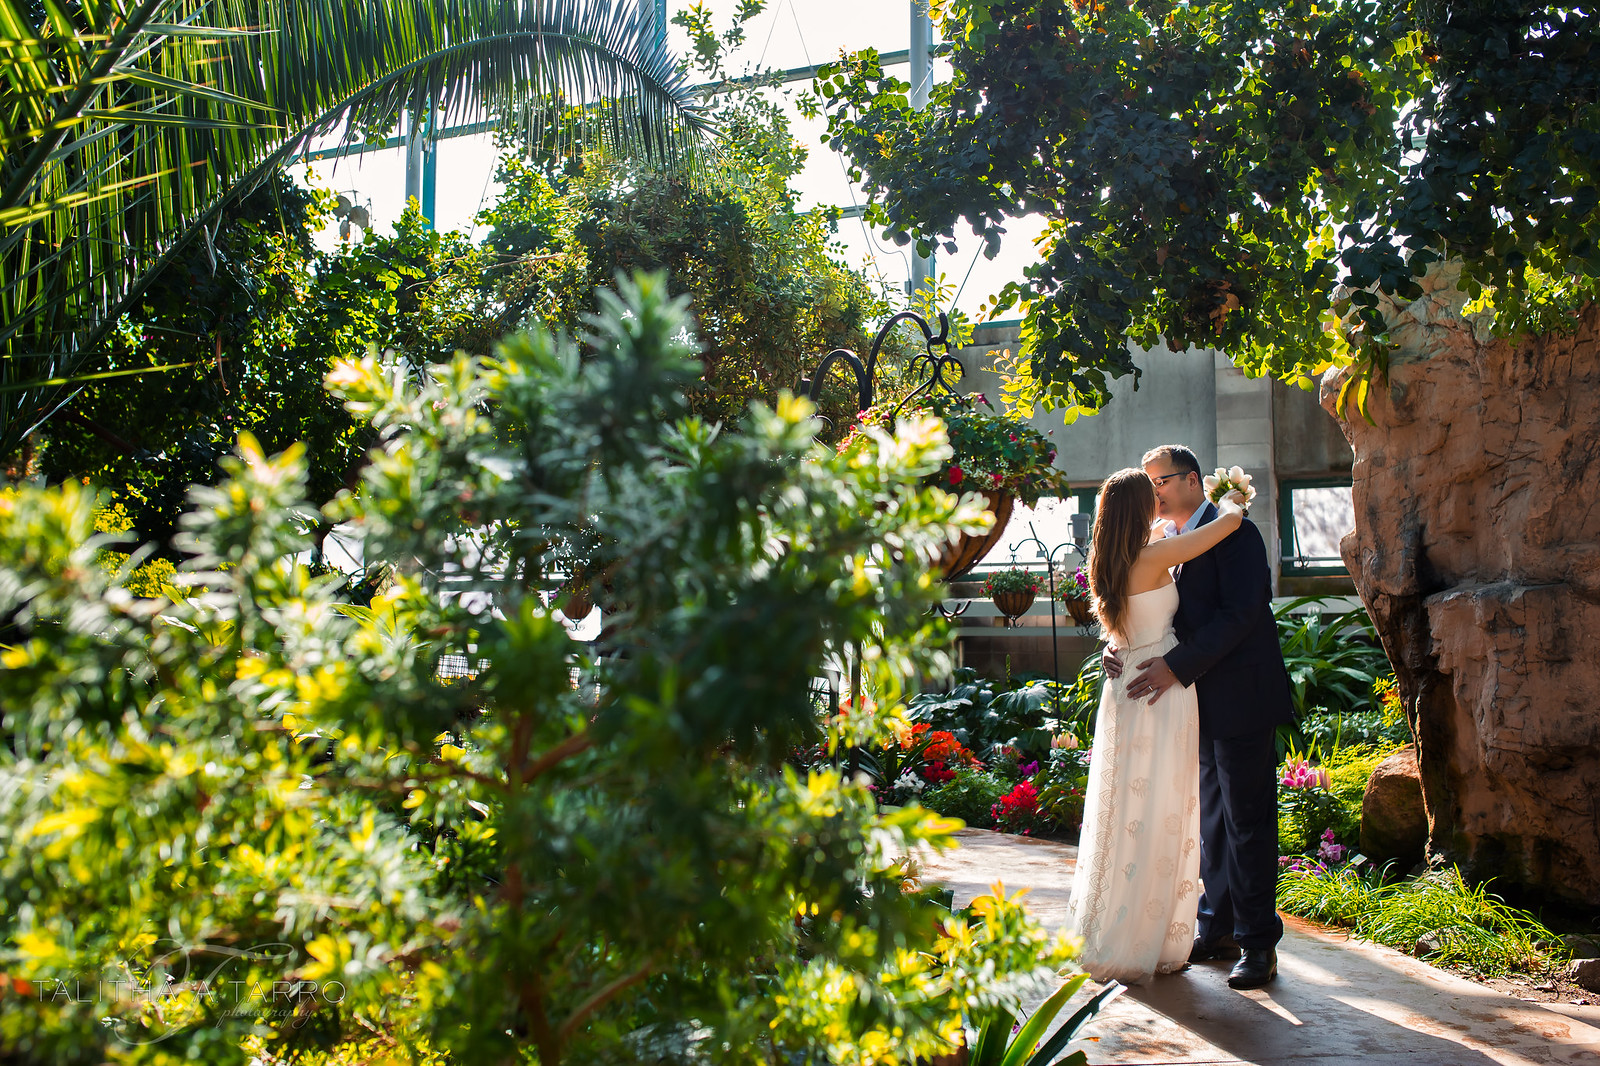 A little wedding with lots of love at the albuquerque botanic garden talitha tarro photography for Botanical gardens albuquerque new mexico